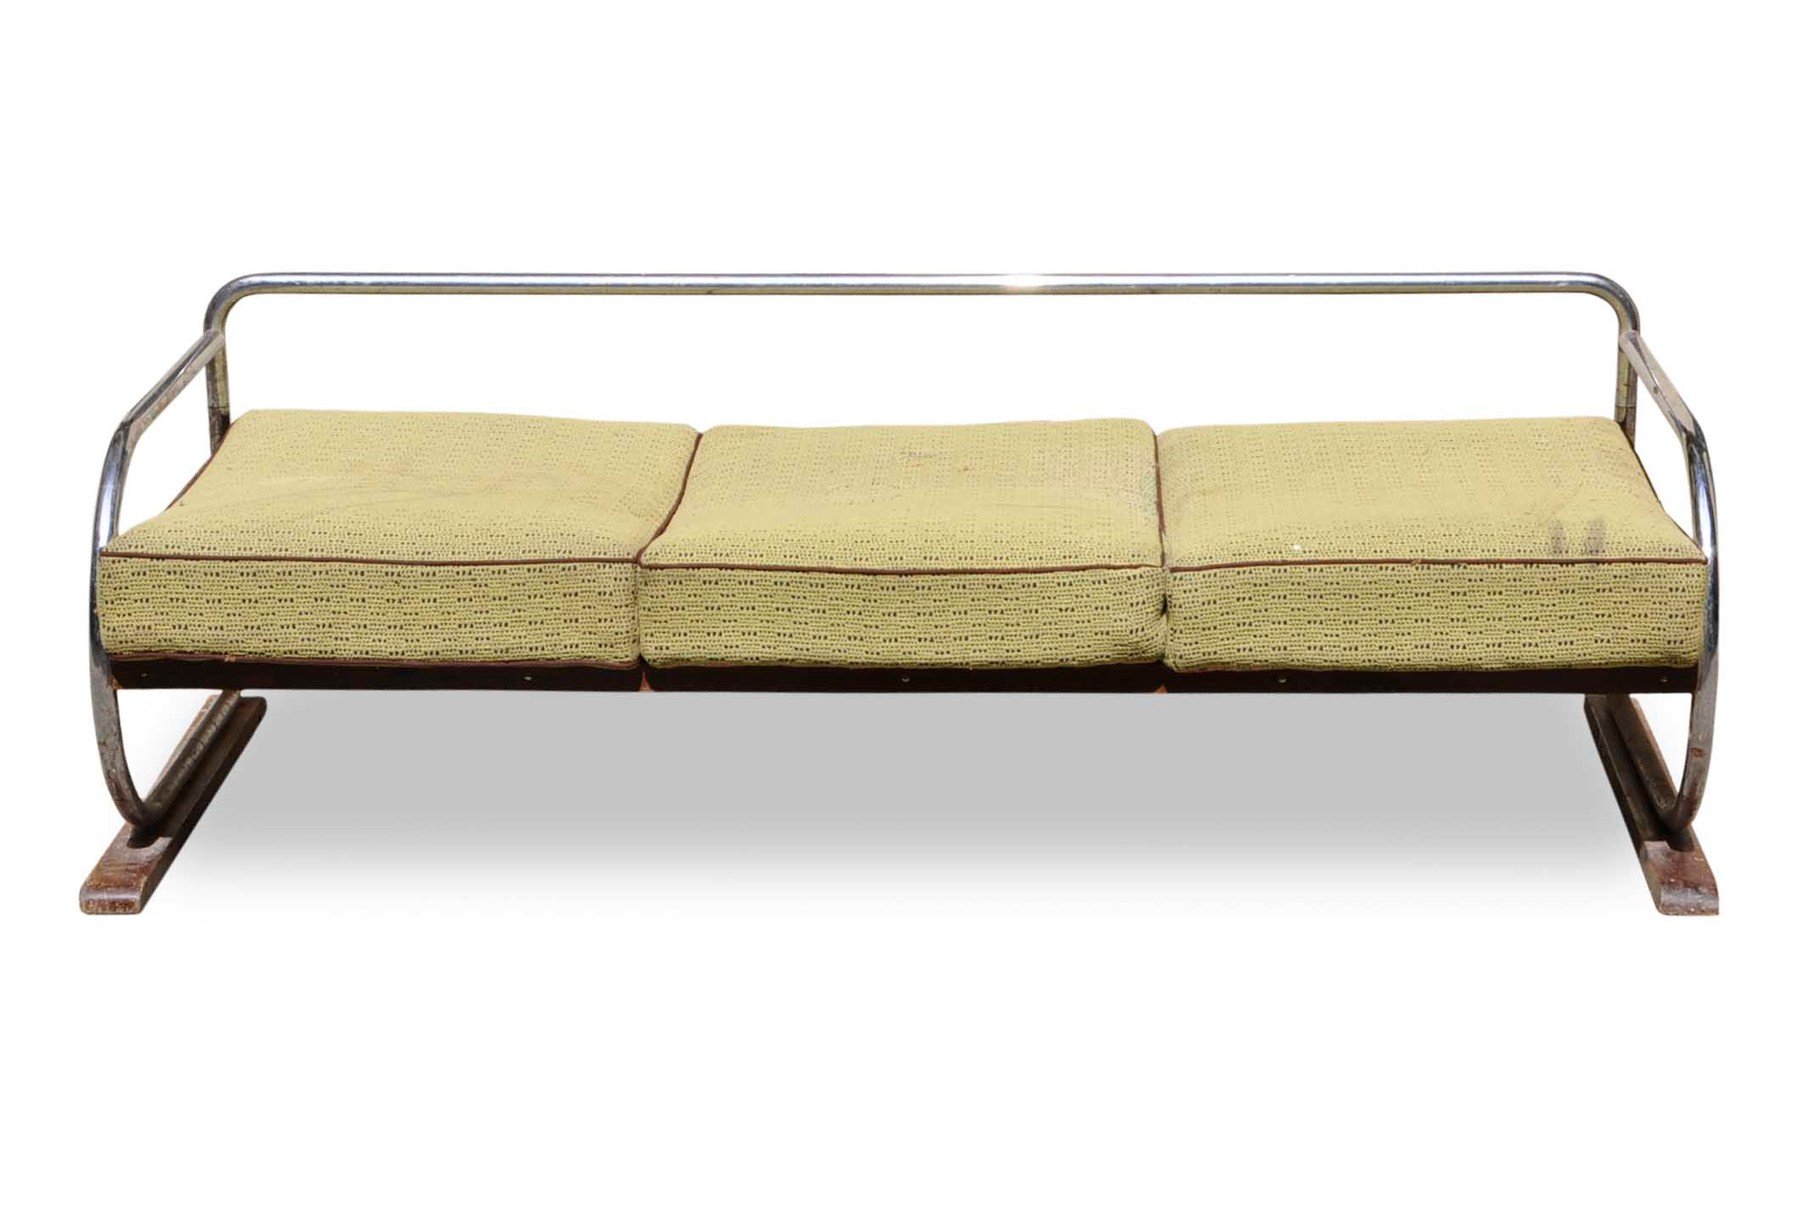 Bauhaus chrome sofa